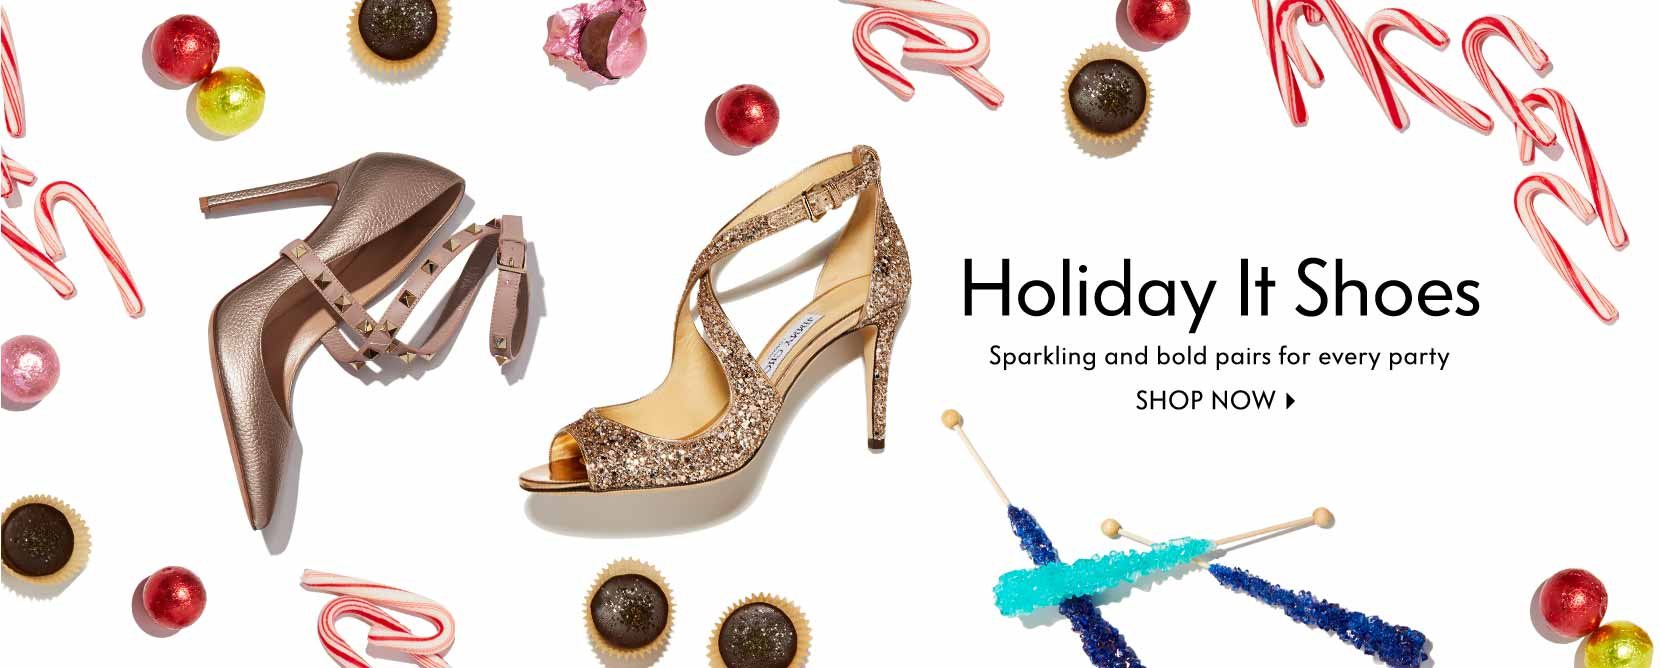 Holiday It Shoes Sparkling and bold pairs for every party